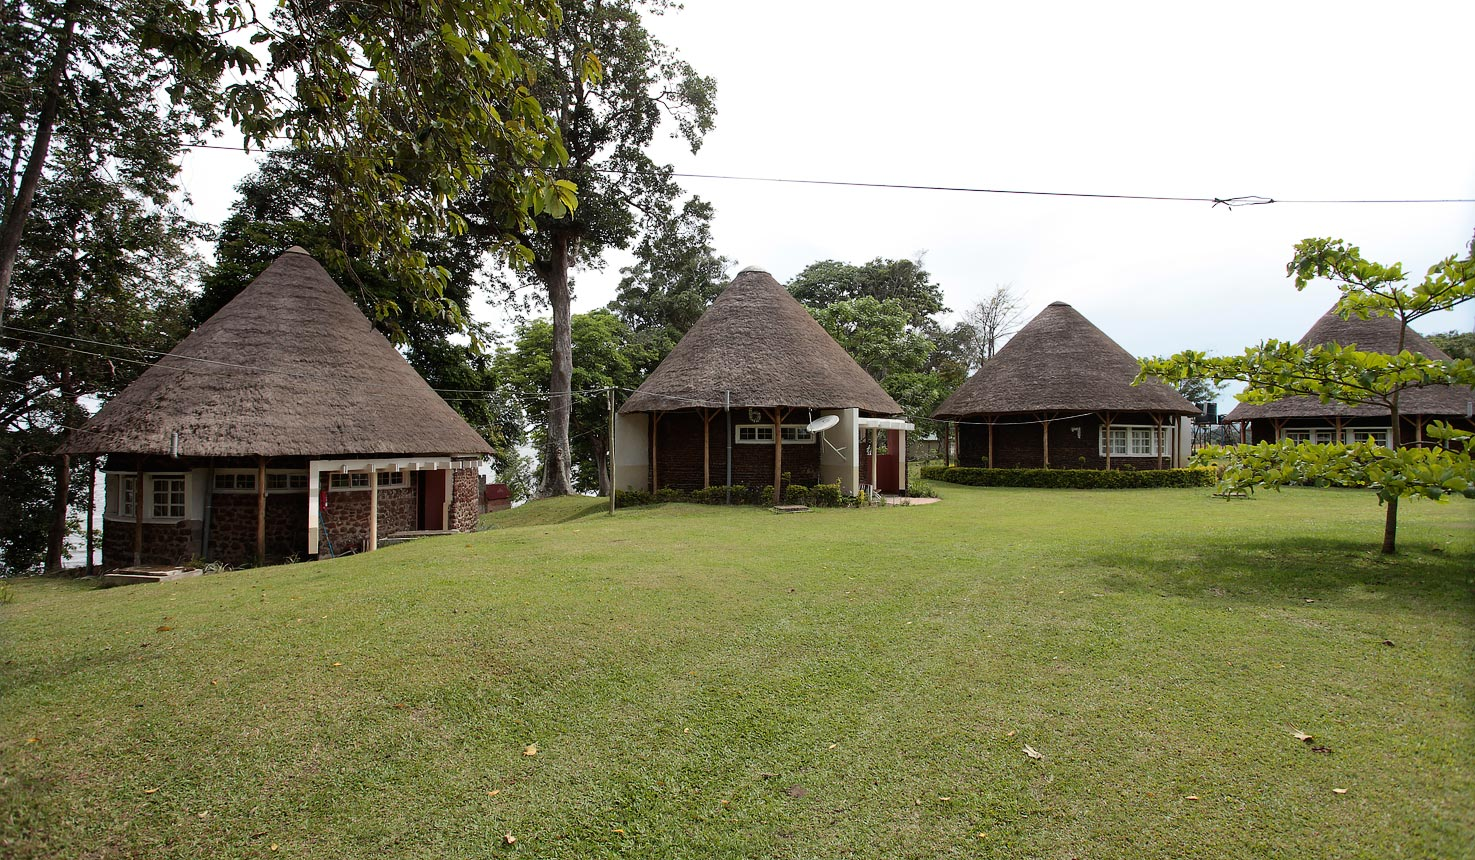 CHURCH OF UGANDA BEACH COTTAGES